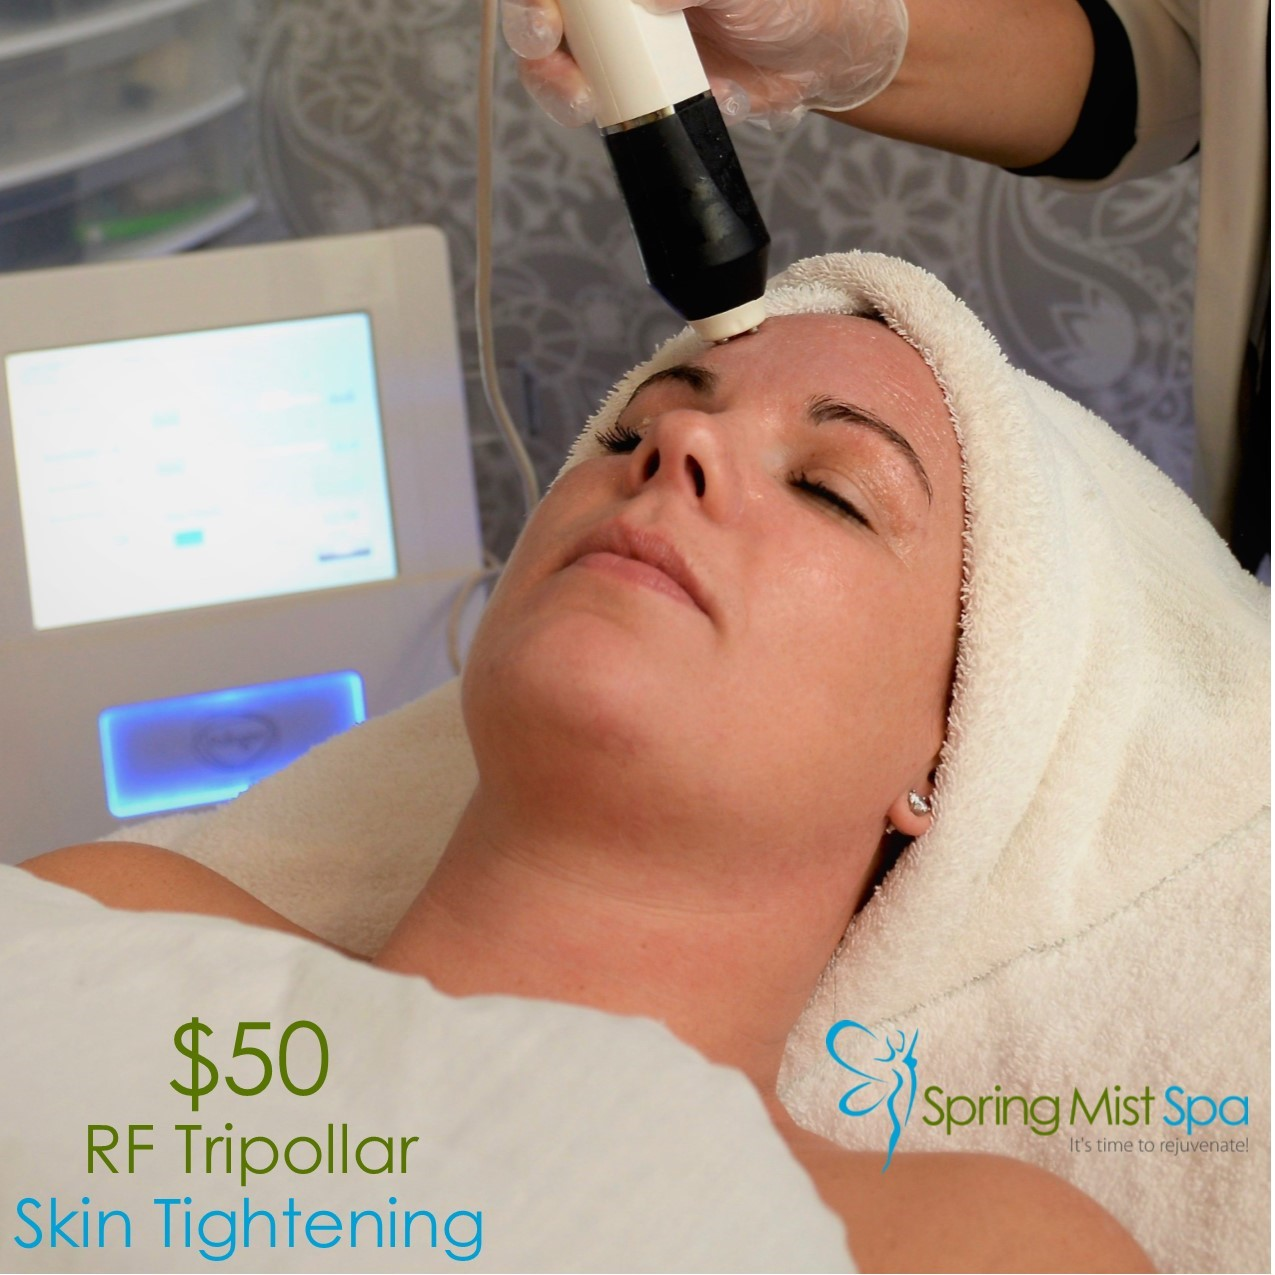 Spring Mist Milton Spa Specials - RF Tripllar Skin Tightening treatment for Eyes - August 2019 Special